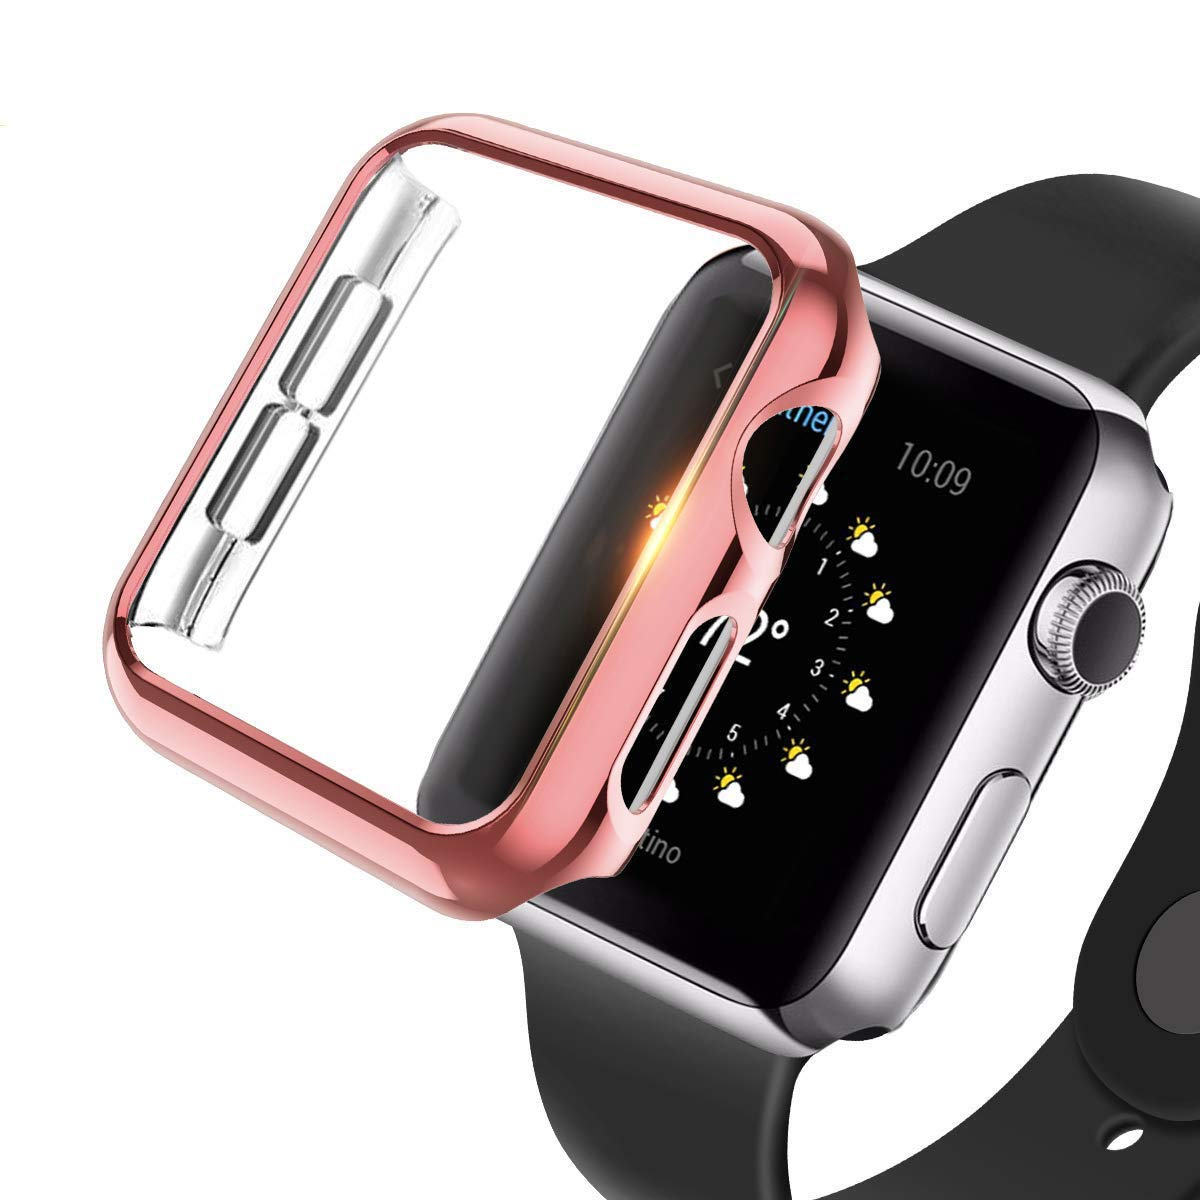 hermoso estilo imágenes detalladas elegante y elegante Details about Para for Apple Watch Series 4 Case iphone reloj protector de  pantalla 44mm